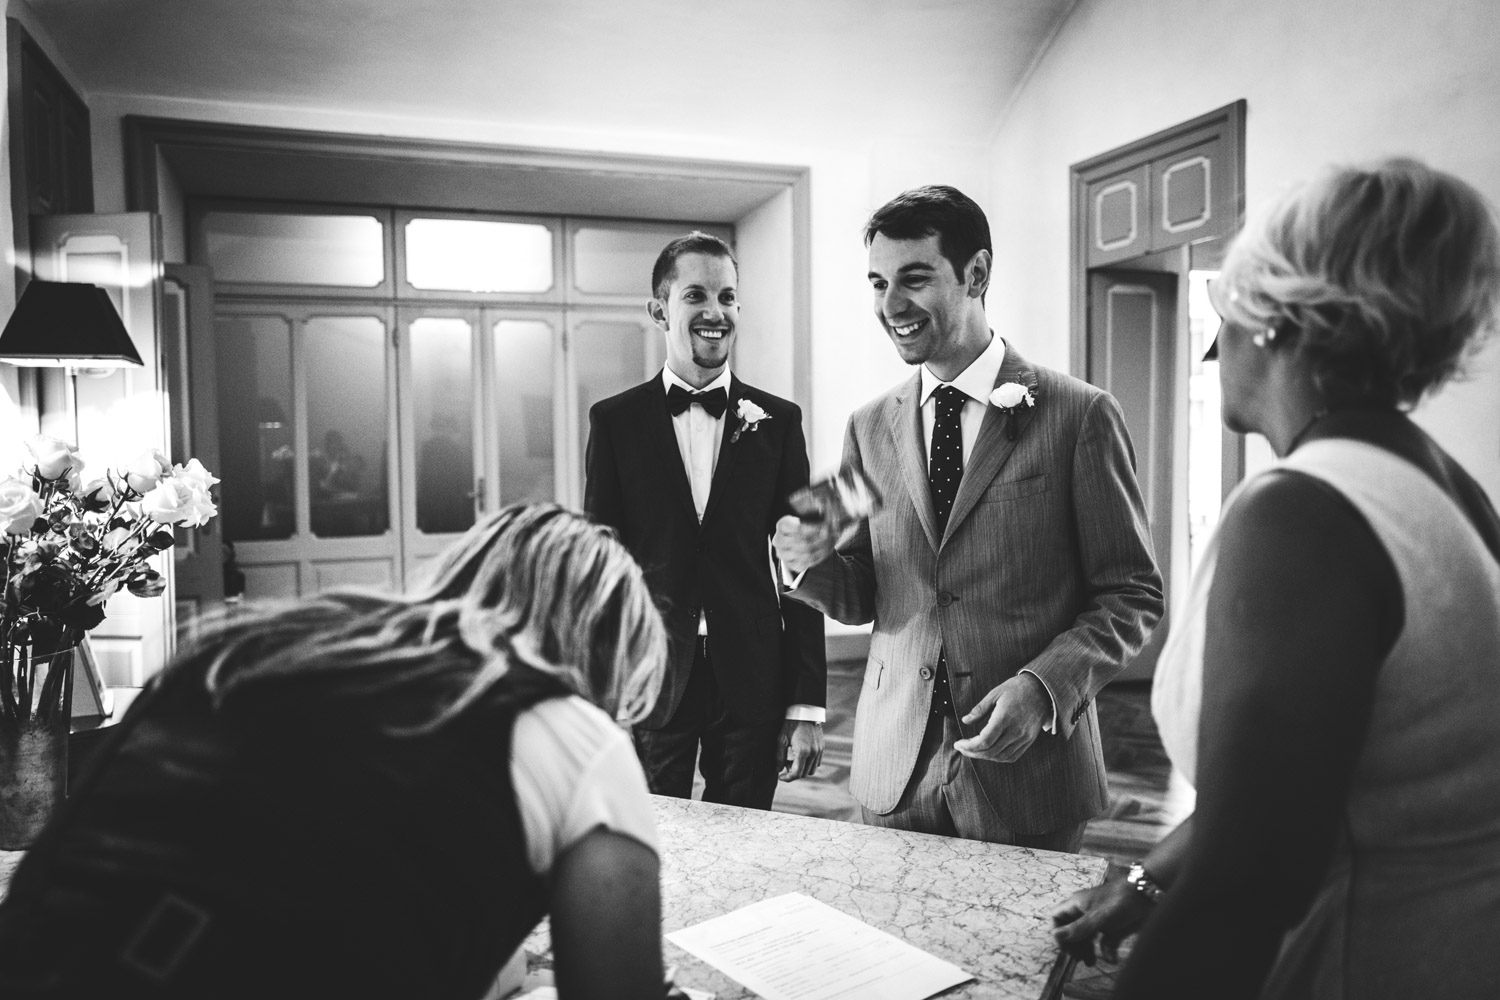 monica-sica_photography_trattoria-revelli_wedding-gay_torino_day_28